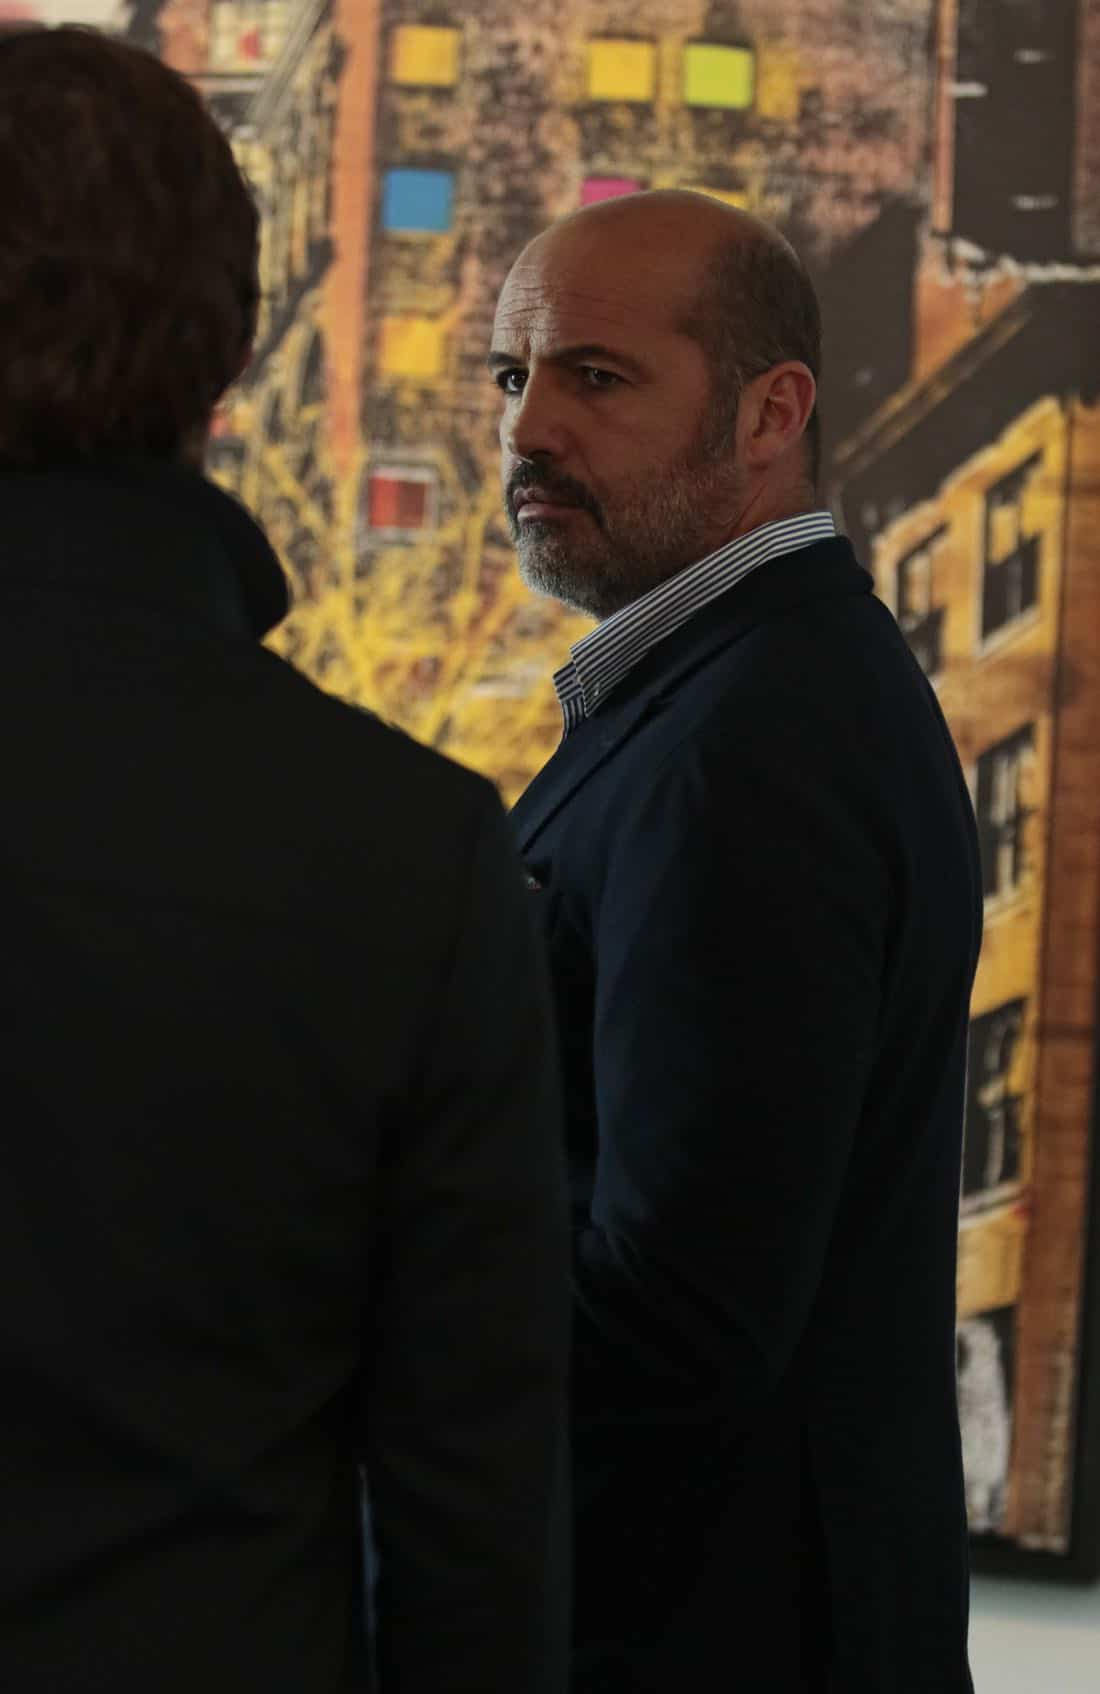 """DECEPTION - """"Masking"""" - When a church's stained glass window is stolen while a famous - yet elusive - street artist is painting a mural nearby, Cam and the team's investigation leads them to the criminal - and an unlikely accomplice - on ABC's """"Deception,"""" airing SUNDAY, APRIL 8 (10:01-11:00 p.m. EDT), on The ABC Television Network. (ABC/Giovanni Rufino) BILLY ZANE"""